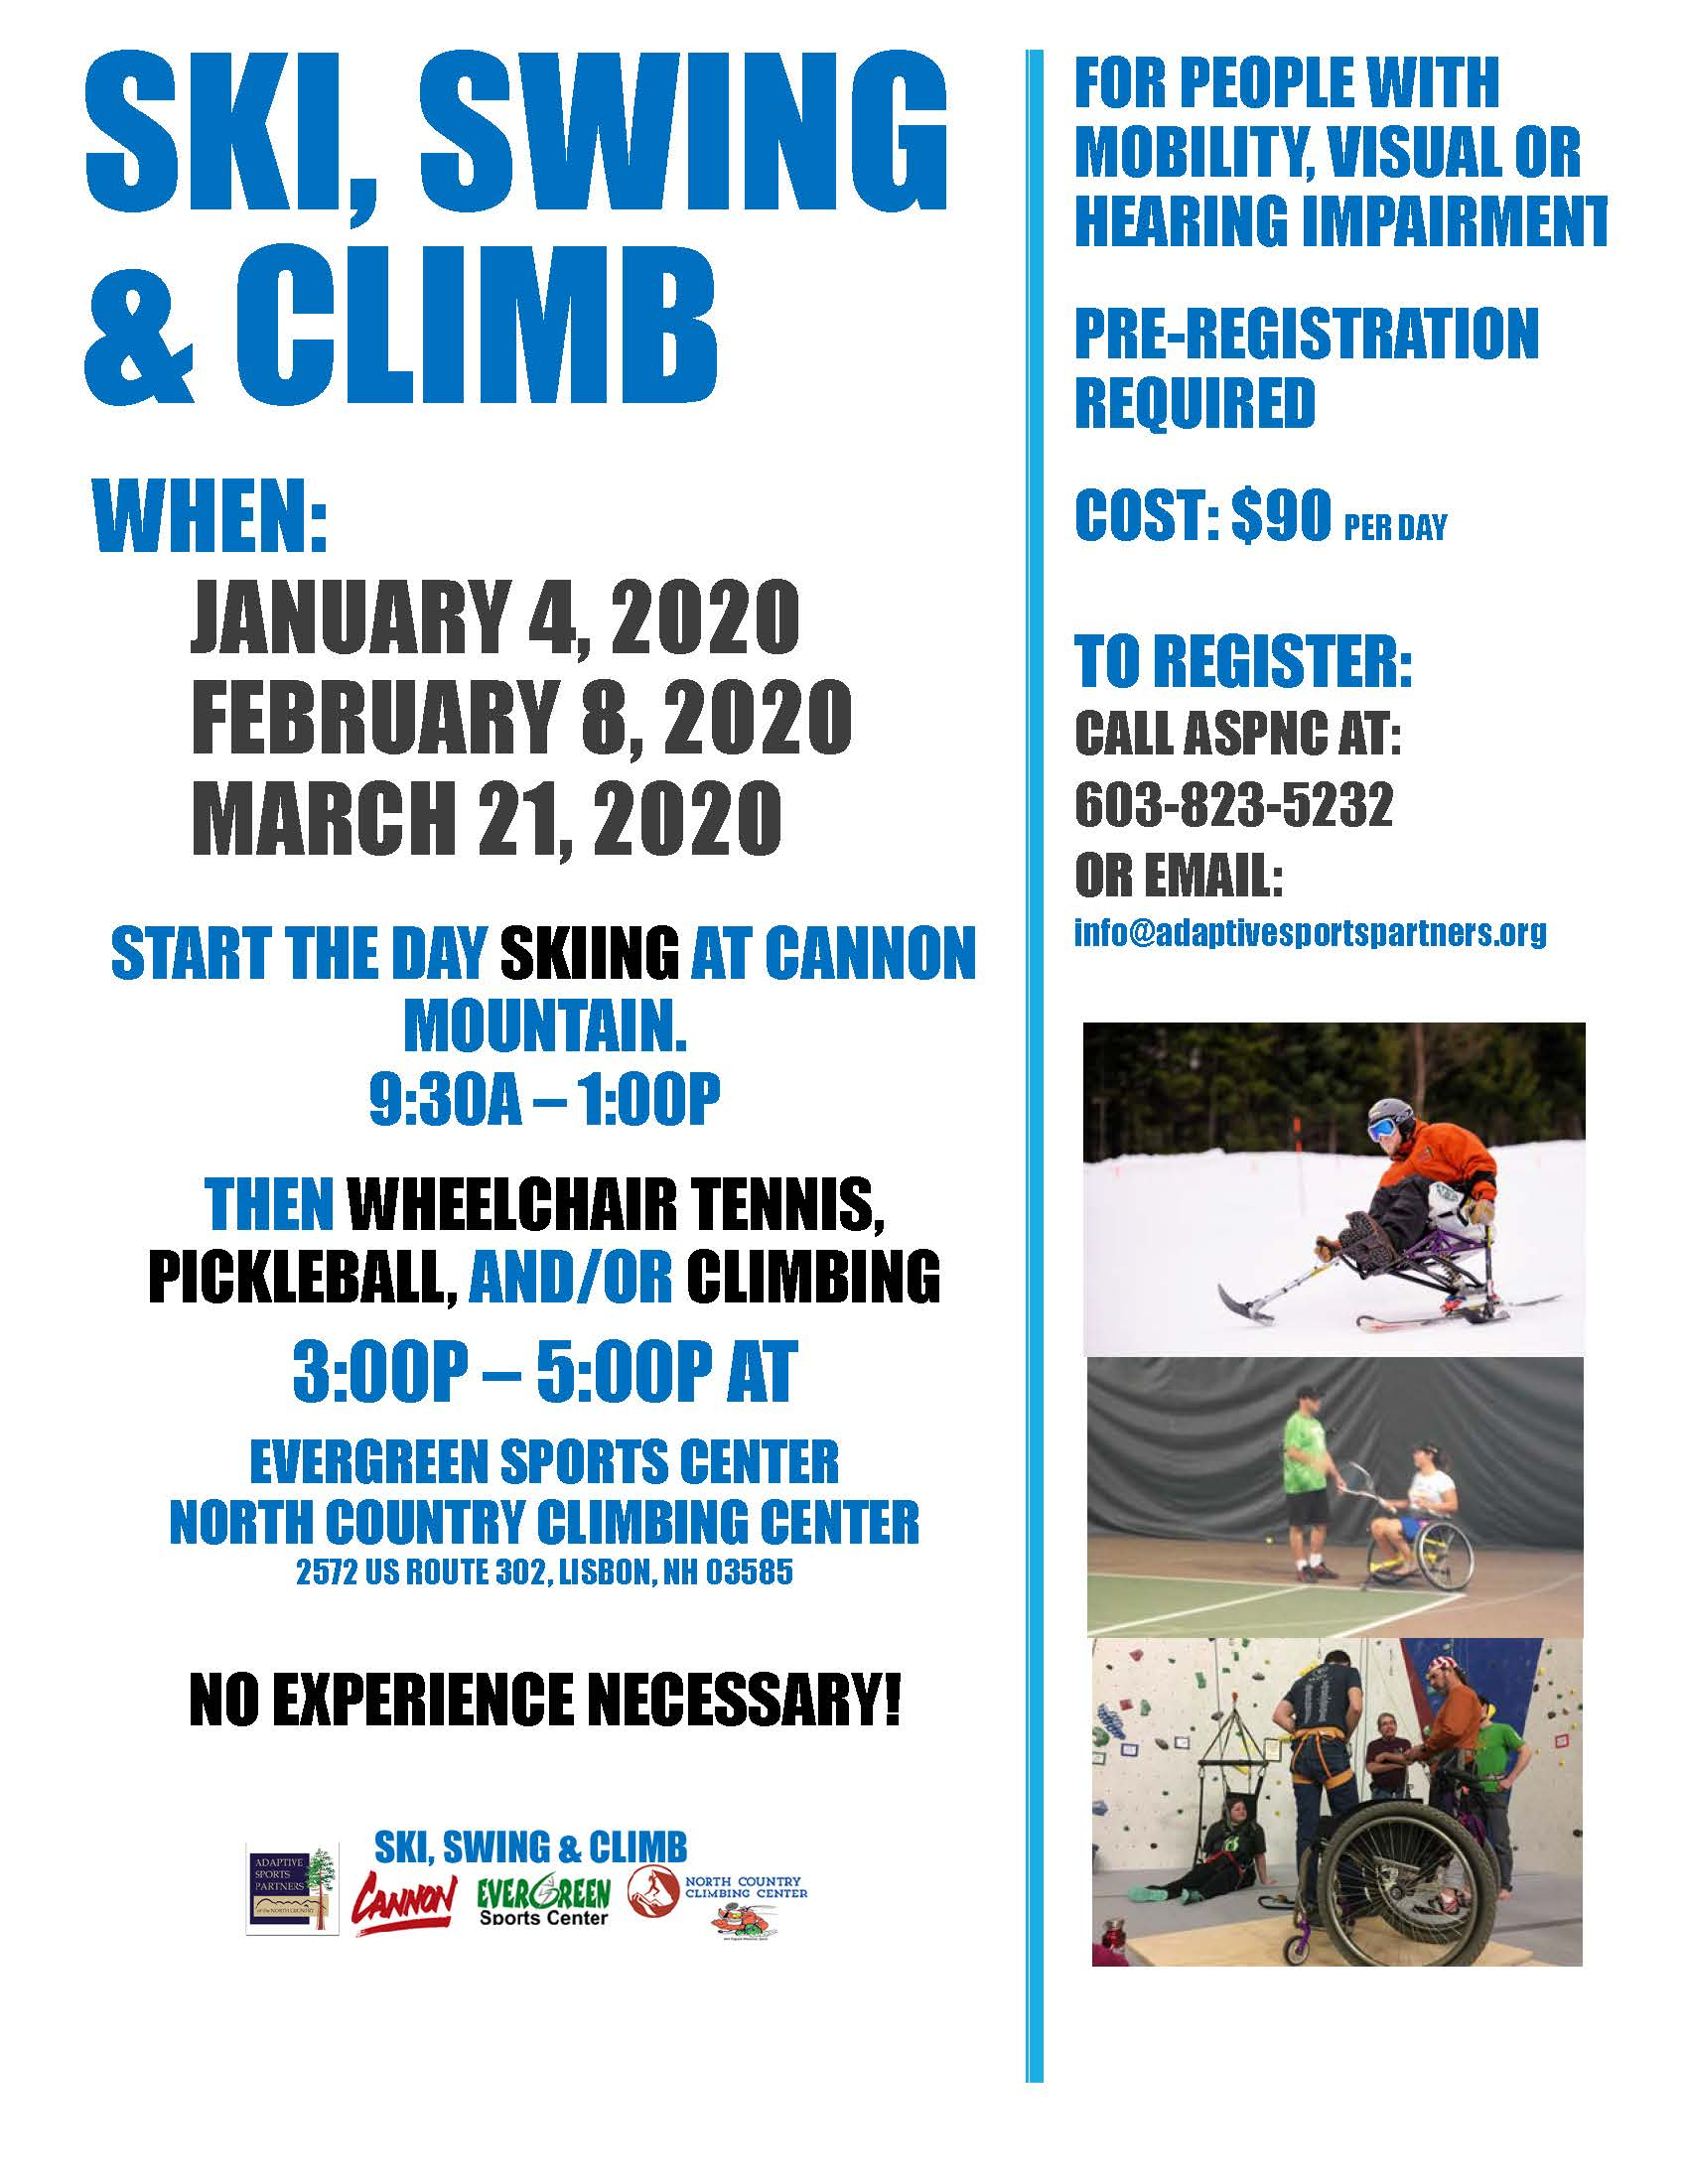 $90 Per Day Schedule for each day: 9:30AM - 1PM - Skiing at Cannon for sit-skiers of any abilities from first-timers to those with plenty of experience and their own equipment.  3PM - 5:00PM - Wheelchair tennis at Evergreen Sports Center for those new to the sport or experienced. Join Harvard University head tennis professional and High performance coach, Micheal Mercier for plenty of fun on the court. Tennis wheelchairs available if needed.  3PM - 5:00PM - Indoor climbing at North Country Climbing Center for individuals with mobility impairments. Open to those new to the sport or with experience.  3PM - 5:00PM - PIckleball at Evergreen Sports Center for individuals with mobility impairments. Open to those new to the sport or with experience. 5:30PM - our crew will head out to a local restaurant for dinner, please plan to join us! (Cost of dinner not included with registration fee.)  Pre-registration necessary. Please contact the ASPNC Office at 603-823-5232 or info@adaptivesportspartners.org for questions.